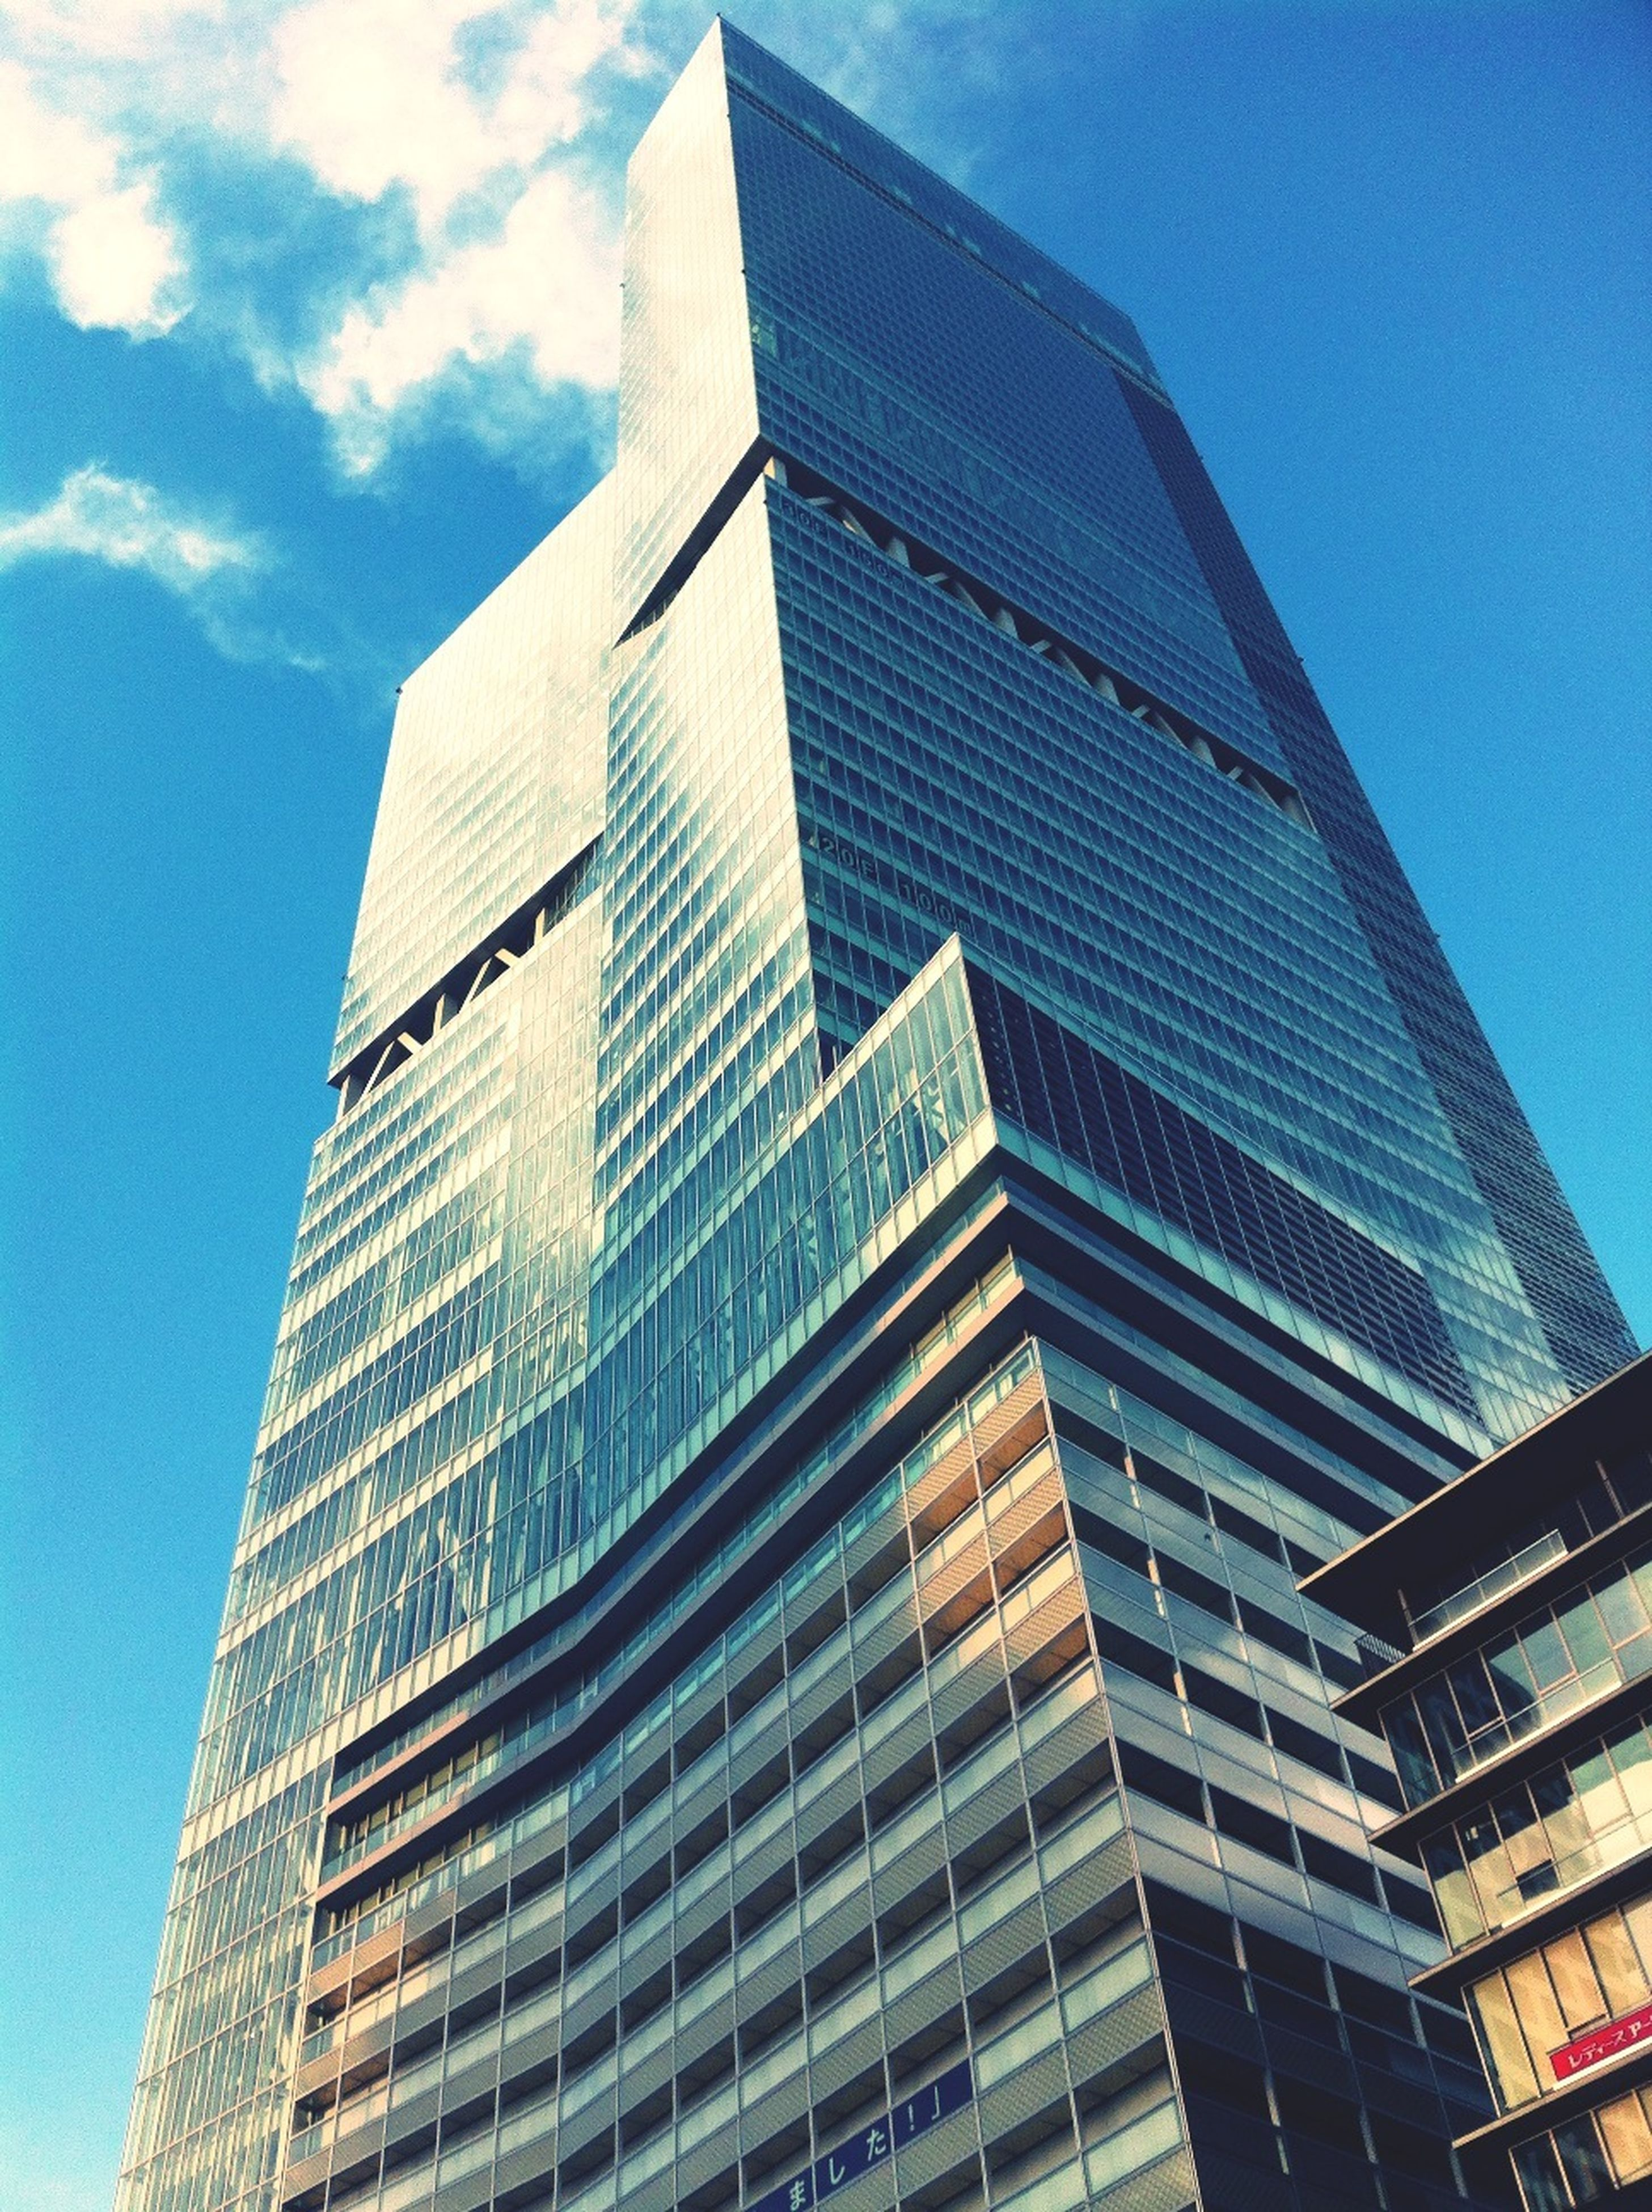 building exterior, architecture, low angle view, built structure, modern, skyscraper, office building, tall - high, city, tower, sky, glass - material, building, tall, reflection, day, outdoors, city life, no people, blue